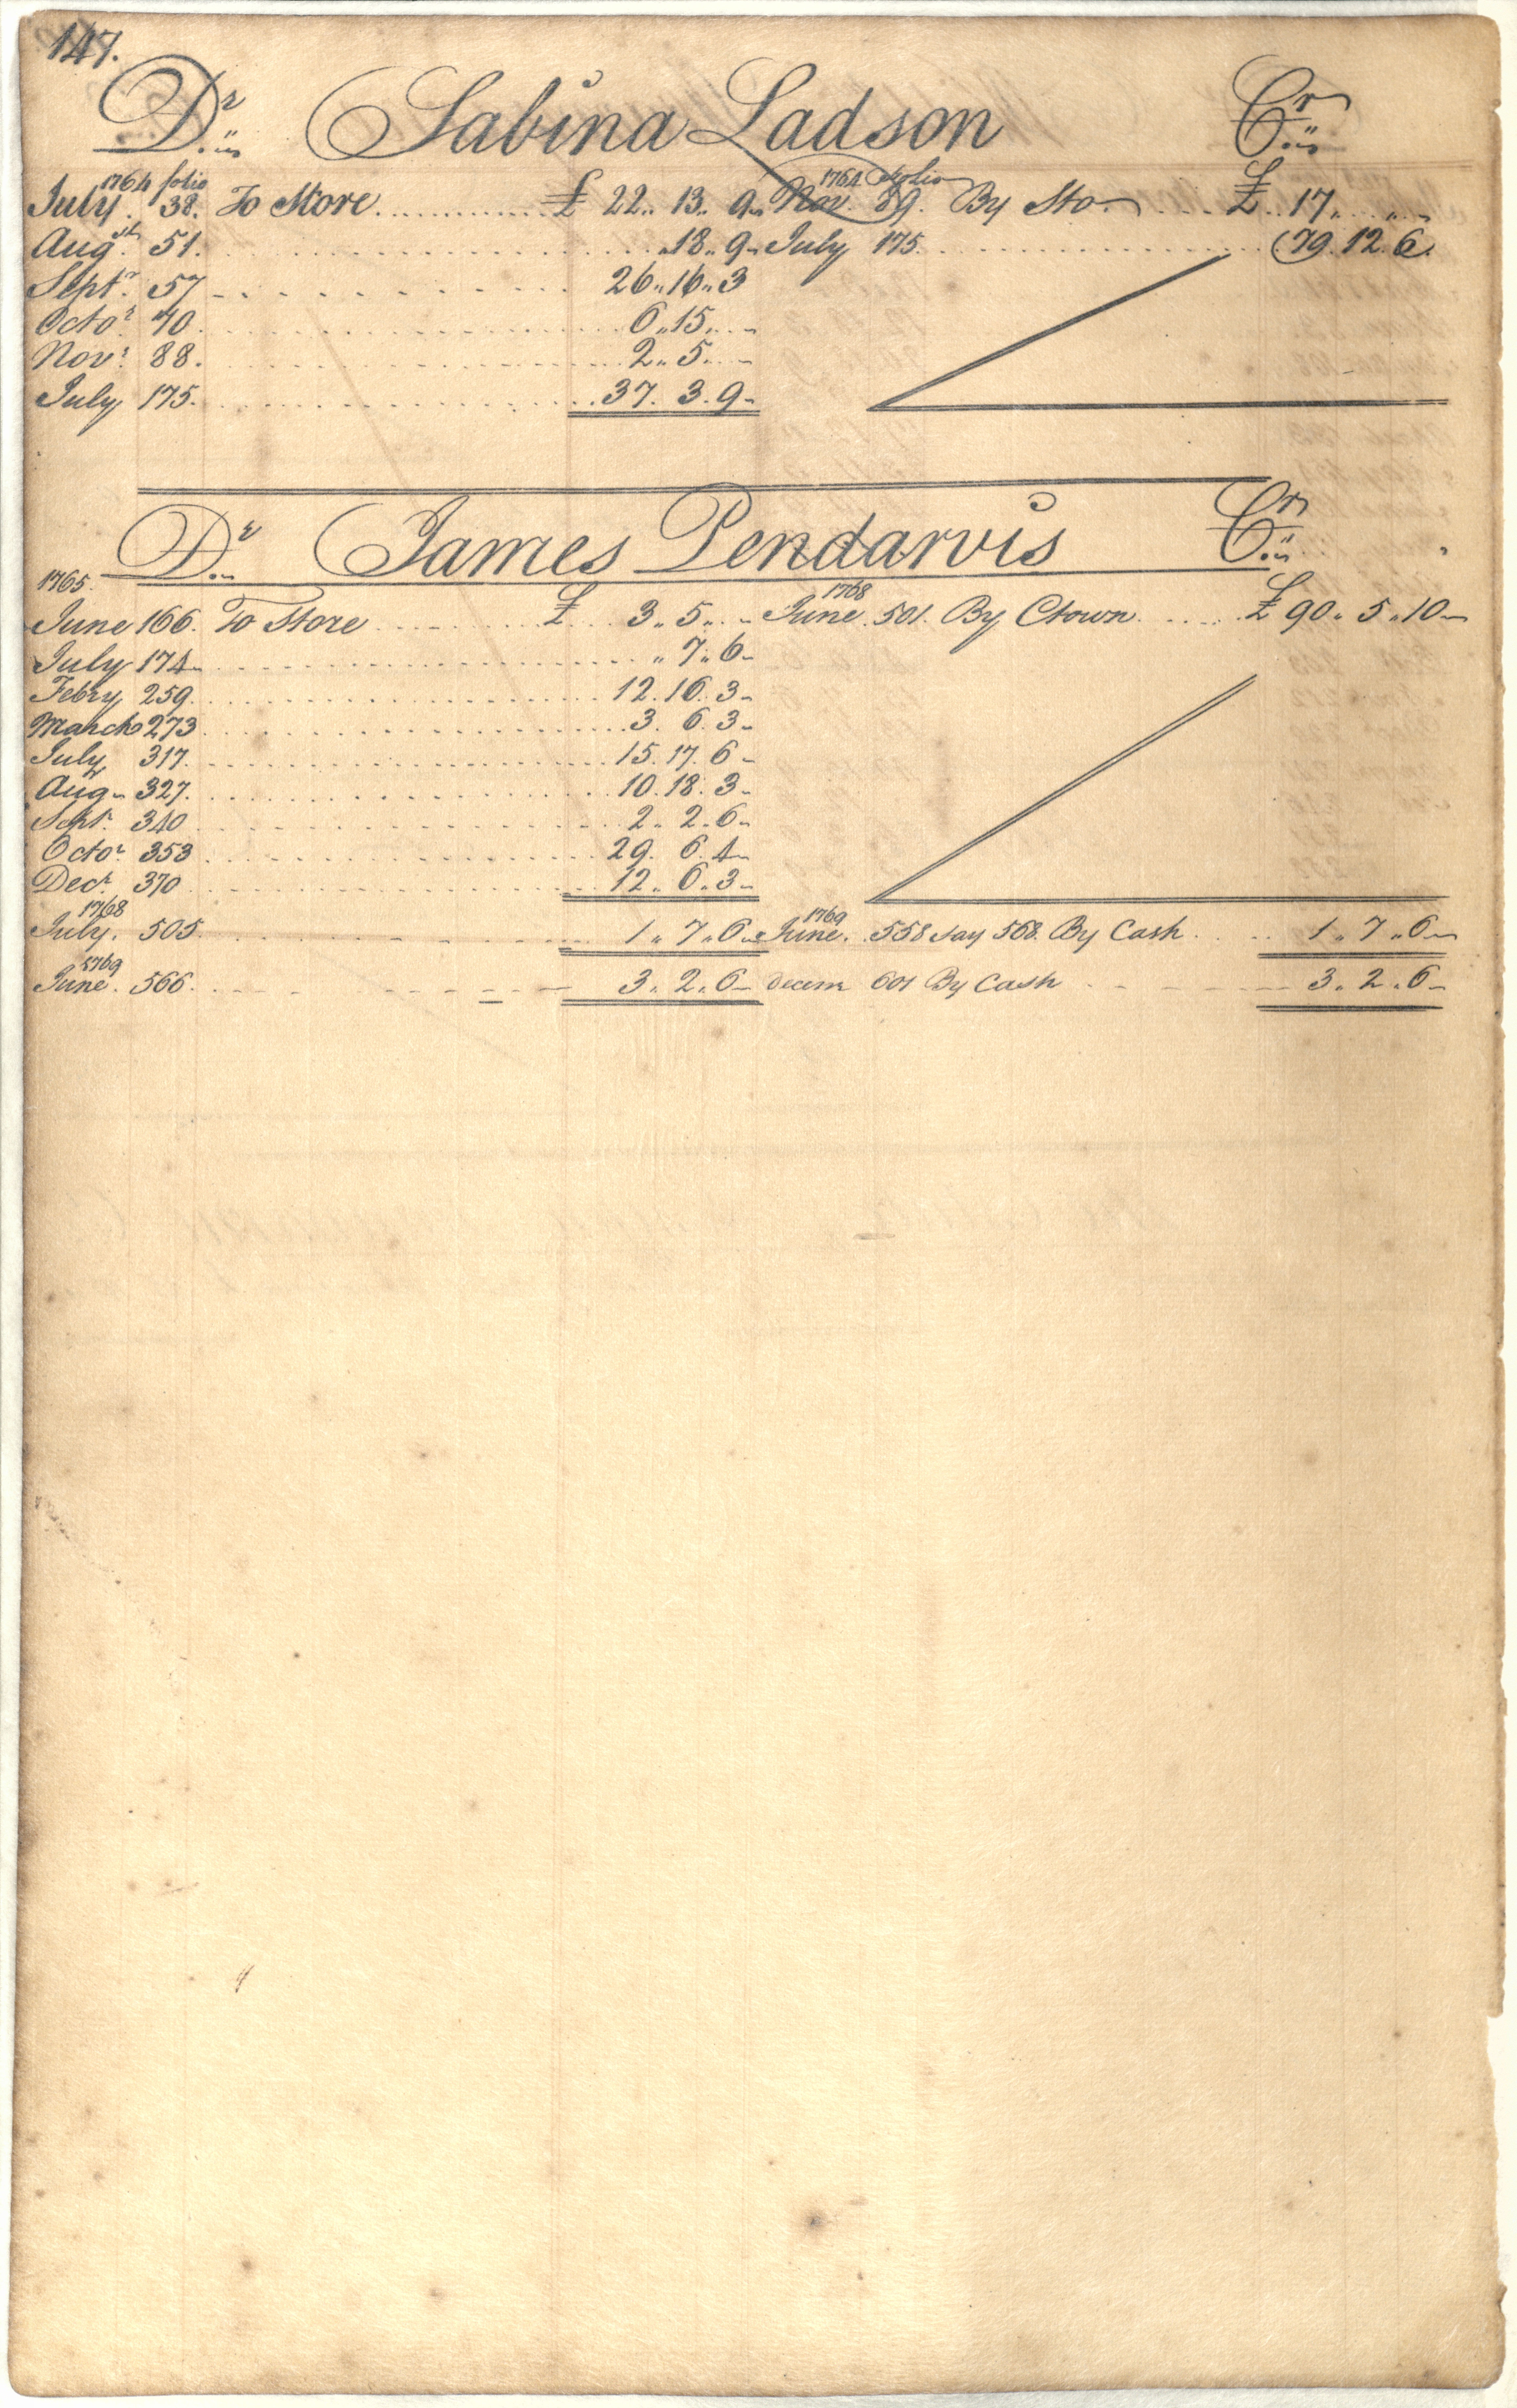 Plowden Weston's Business Ledger, page 147